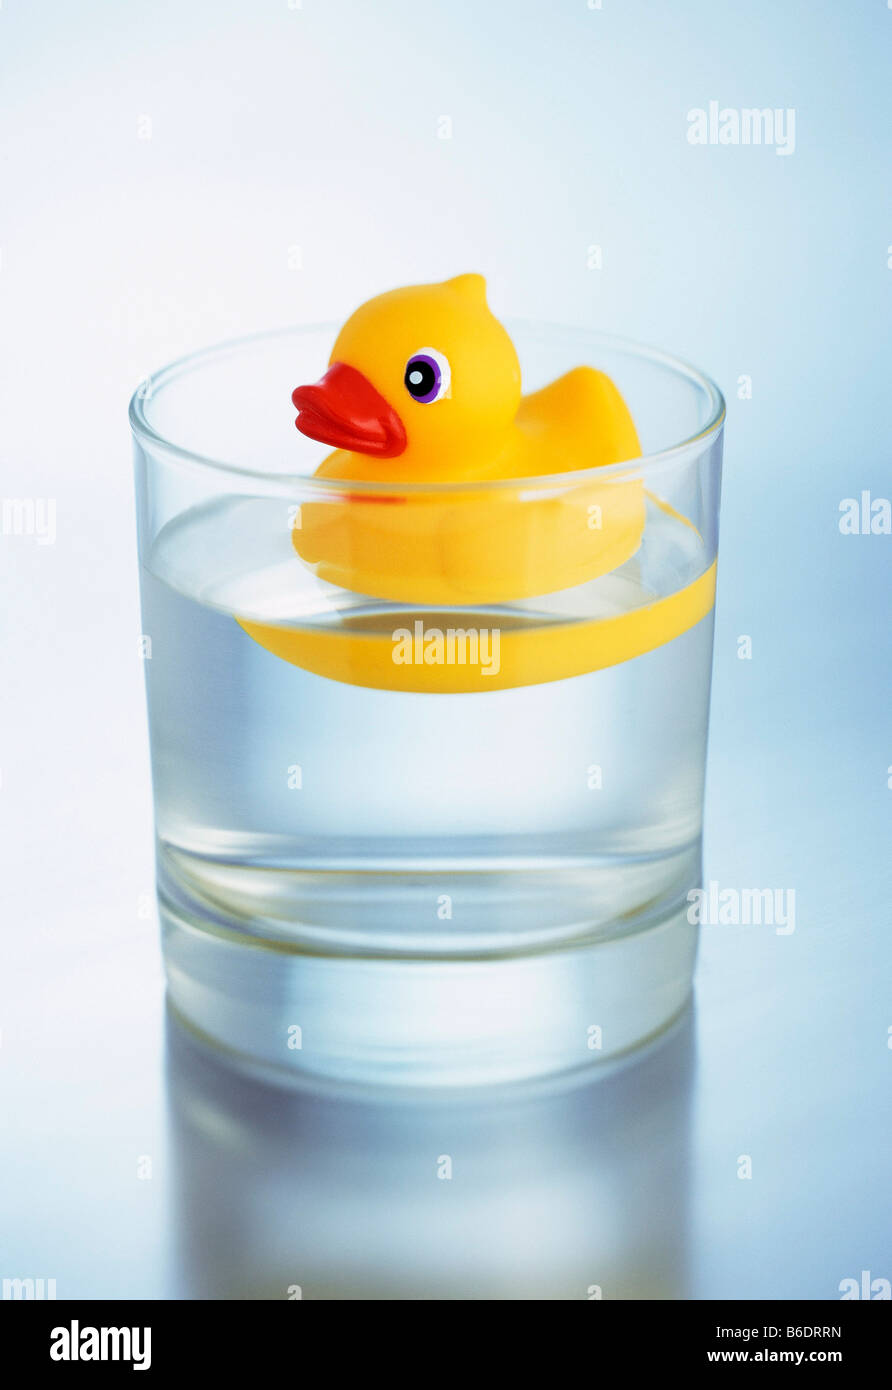 floating objects in water - photo #6